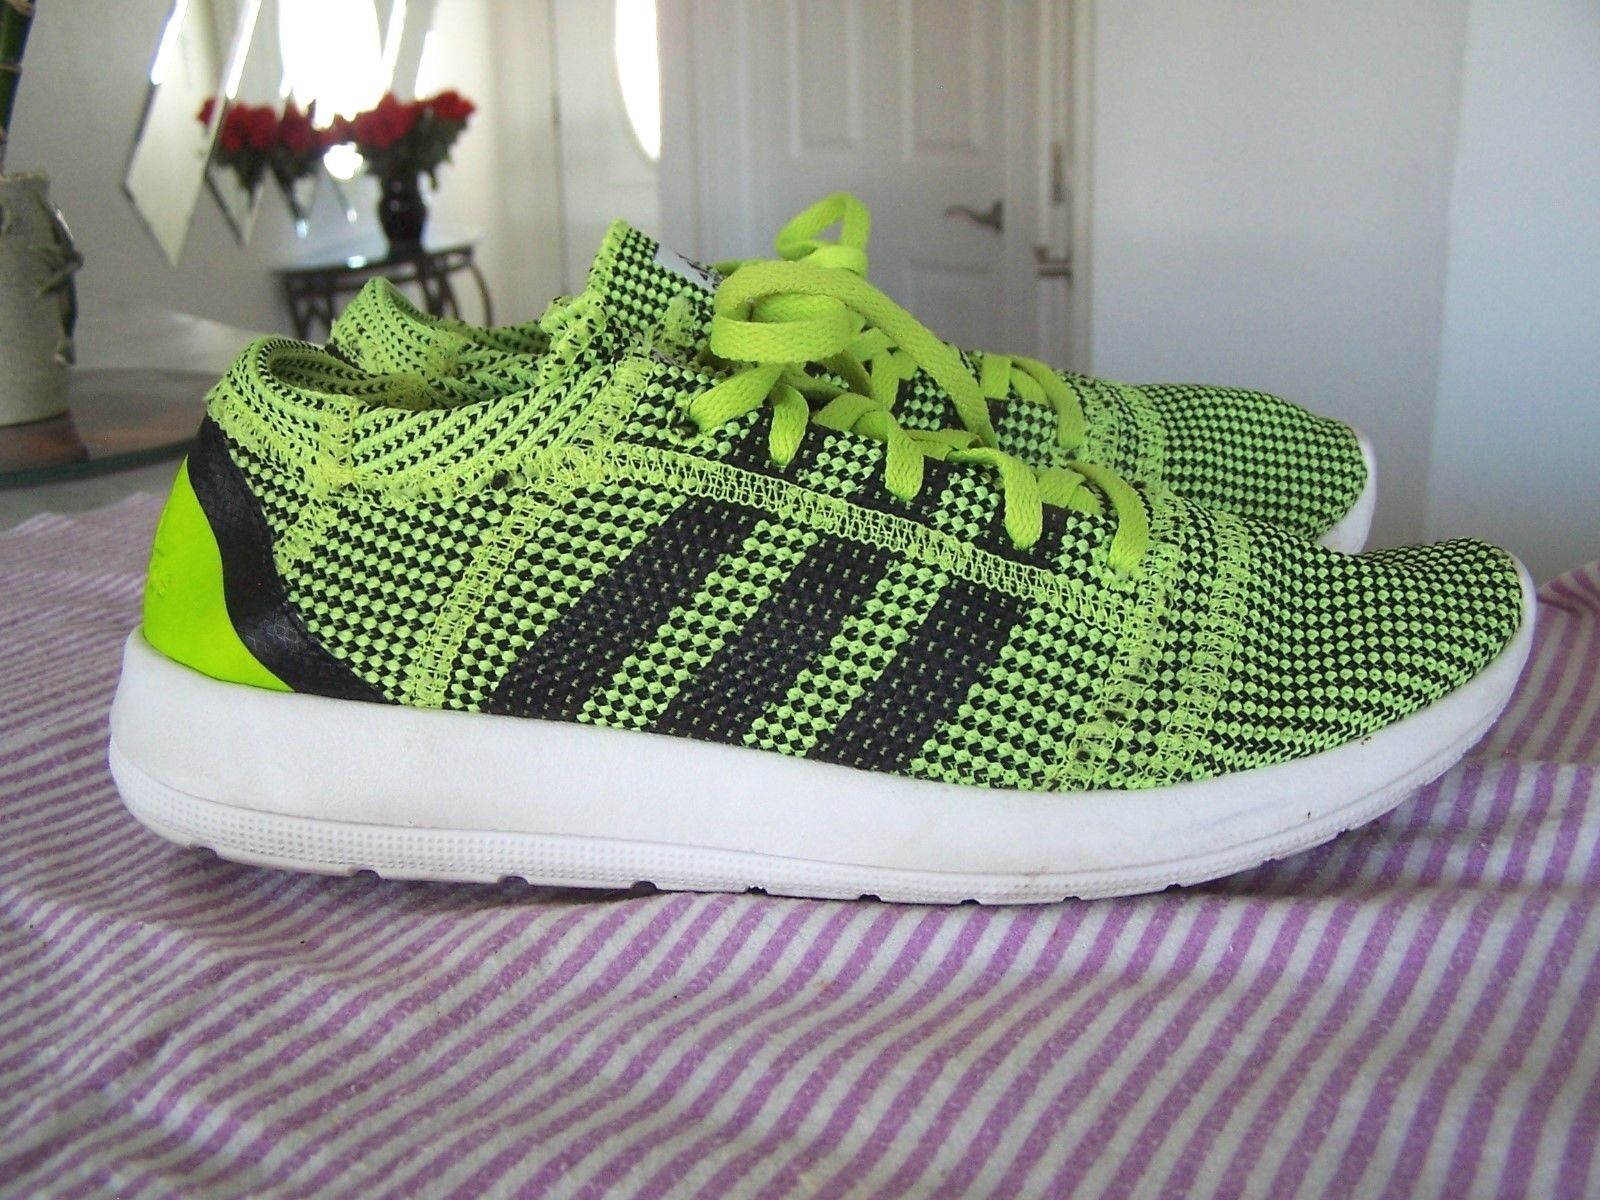 Adidas Element Refine Tricot Womens Lace Up Bright Green shoes Size 8 (2014)